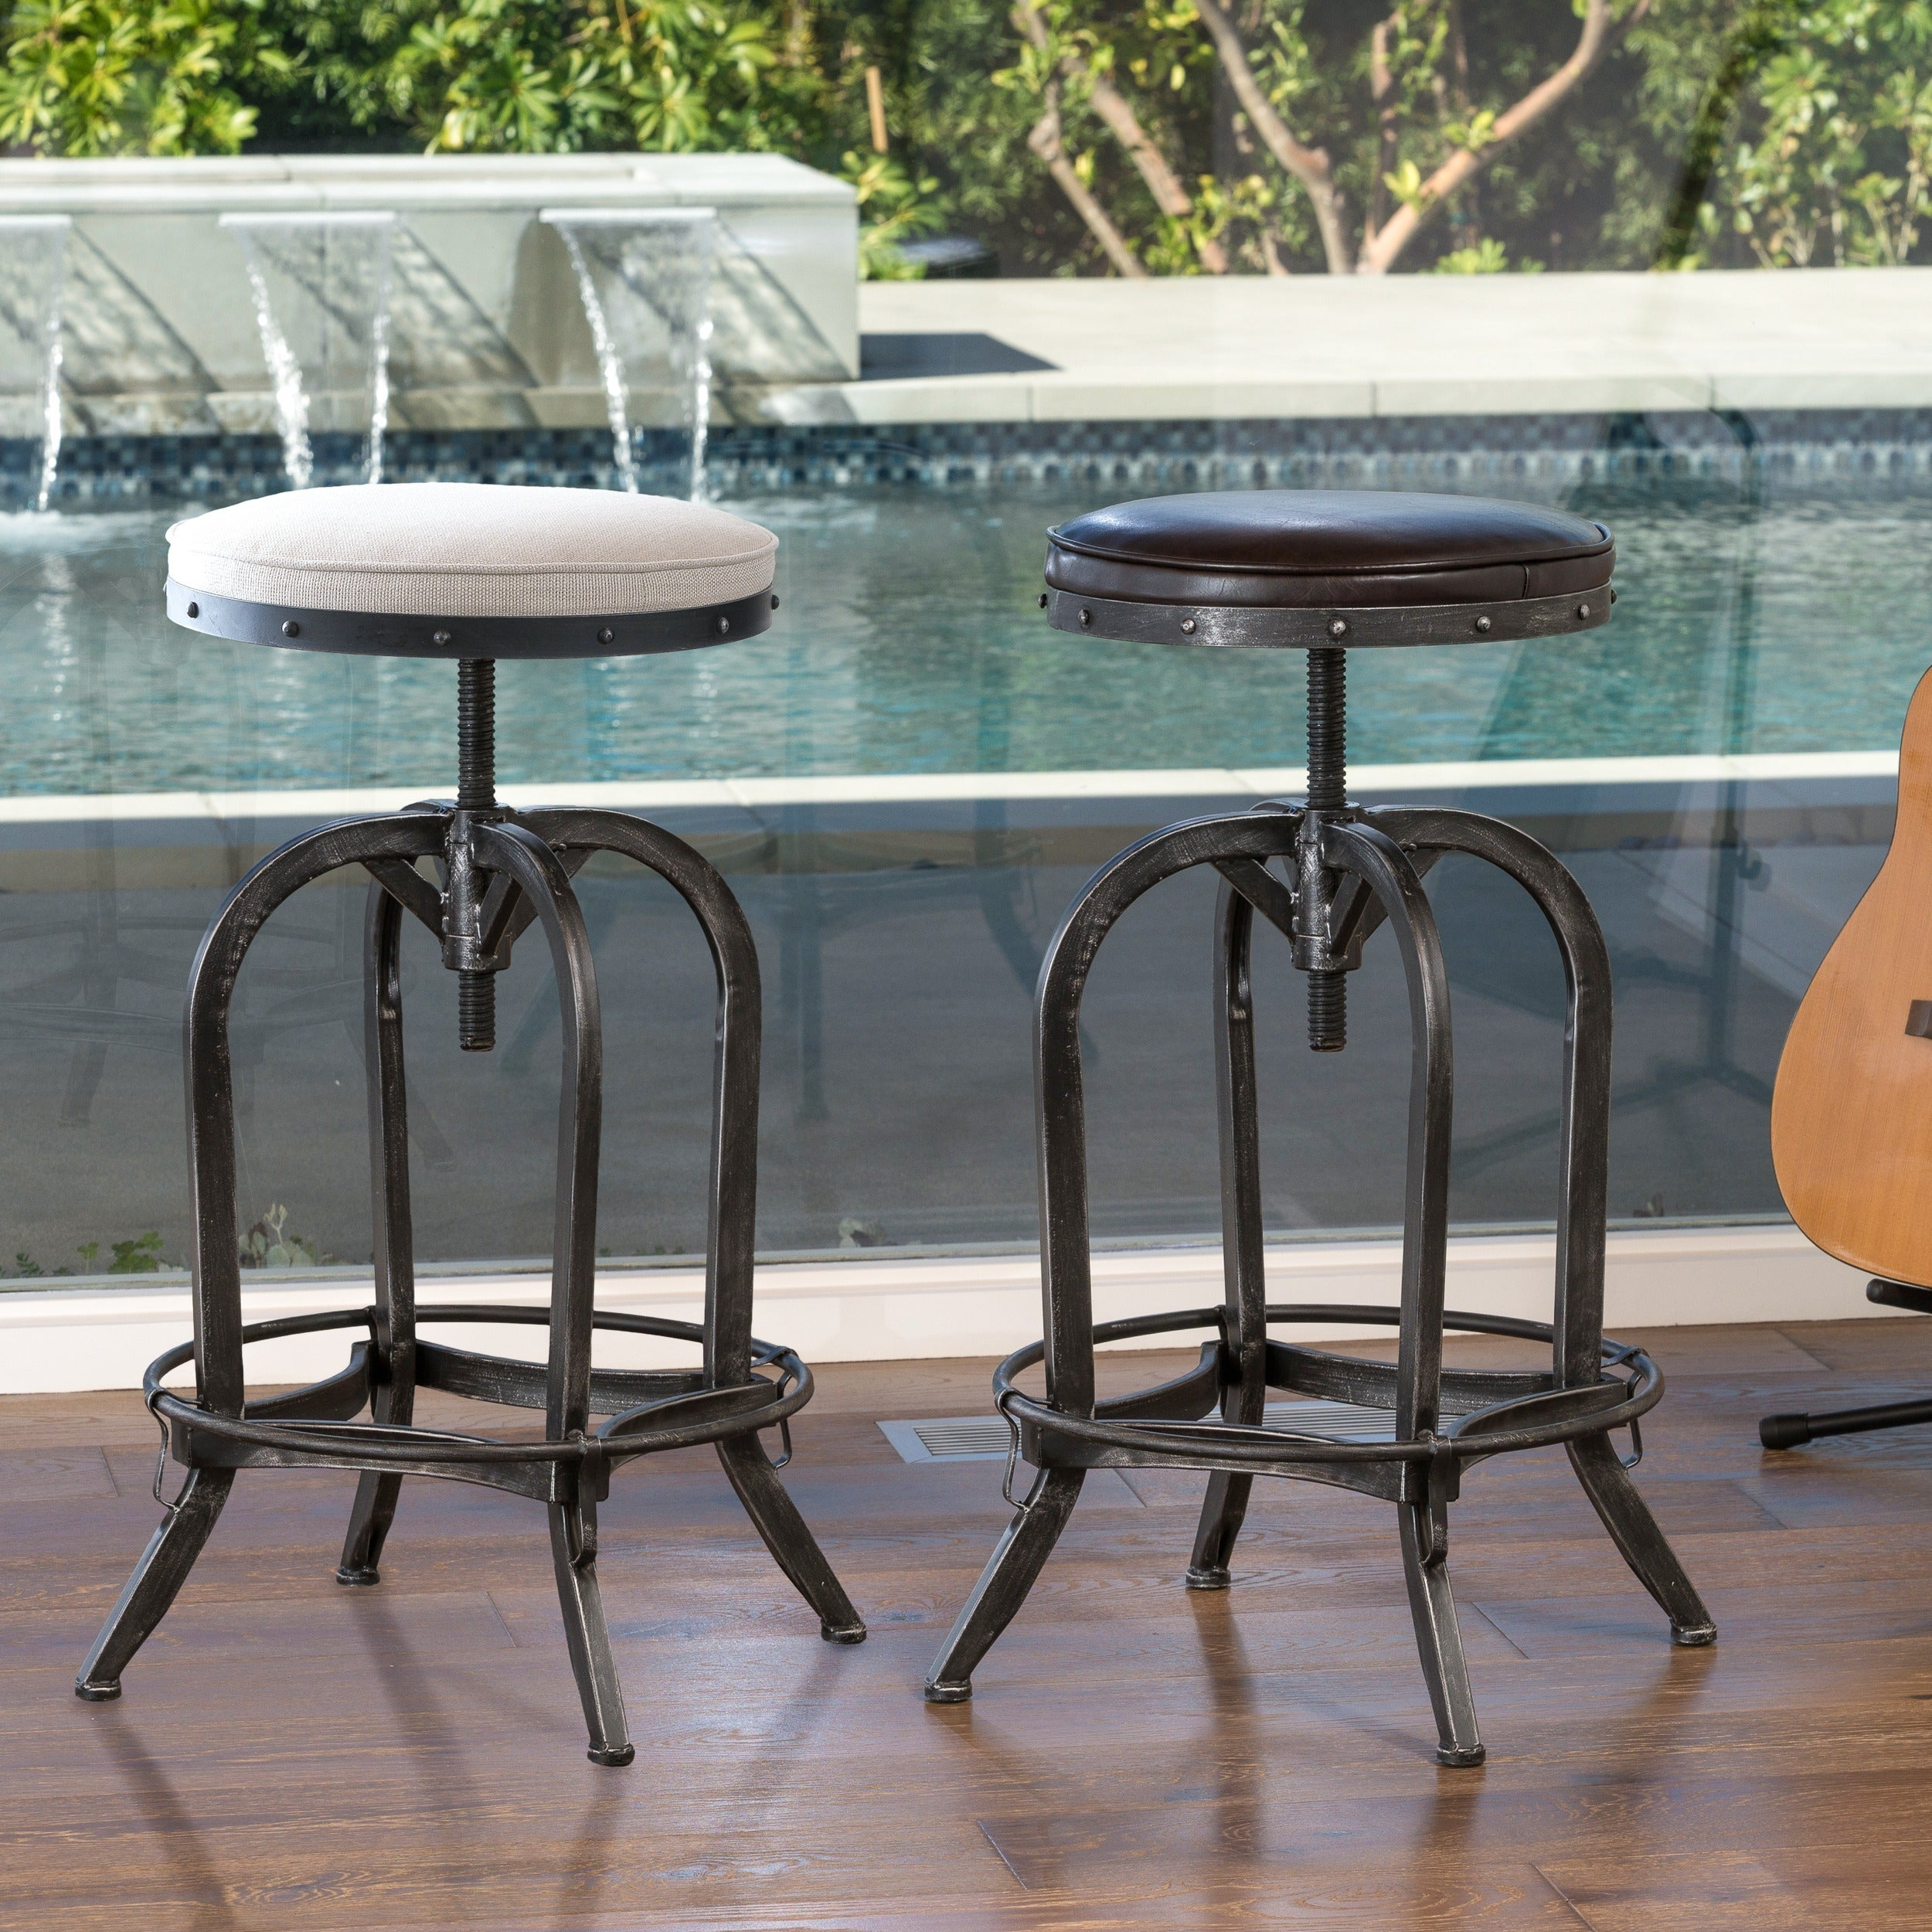 Gunner 28 Inch Swivel Bar Stool By Christopher Knight Home 27 5 33 25 H X 18 5 W Overstock 8672657